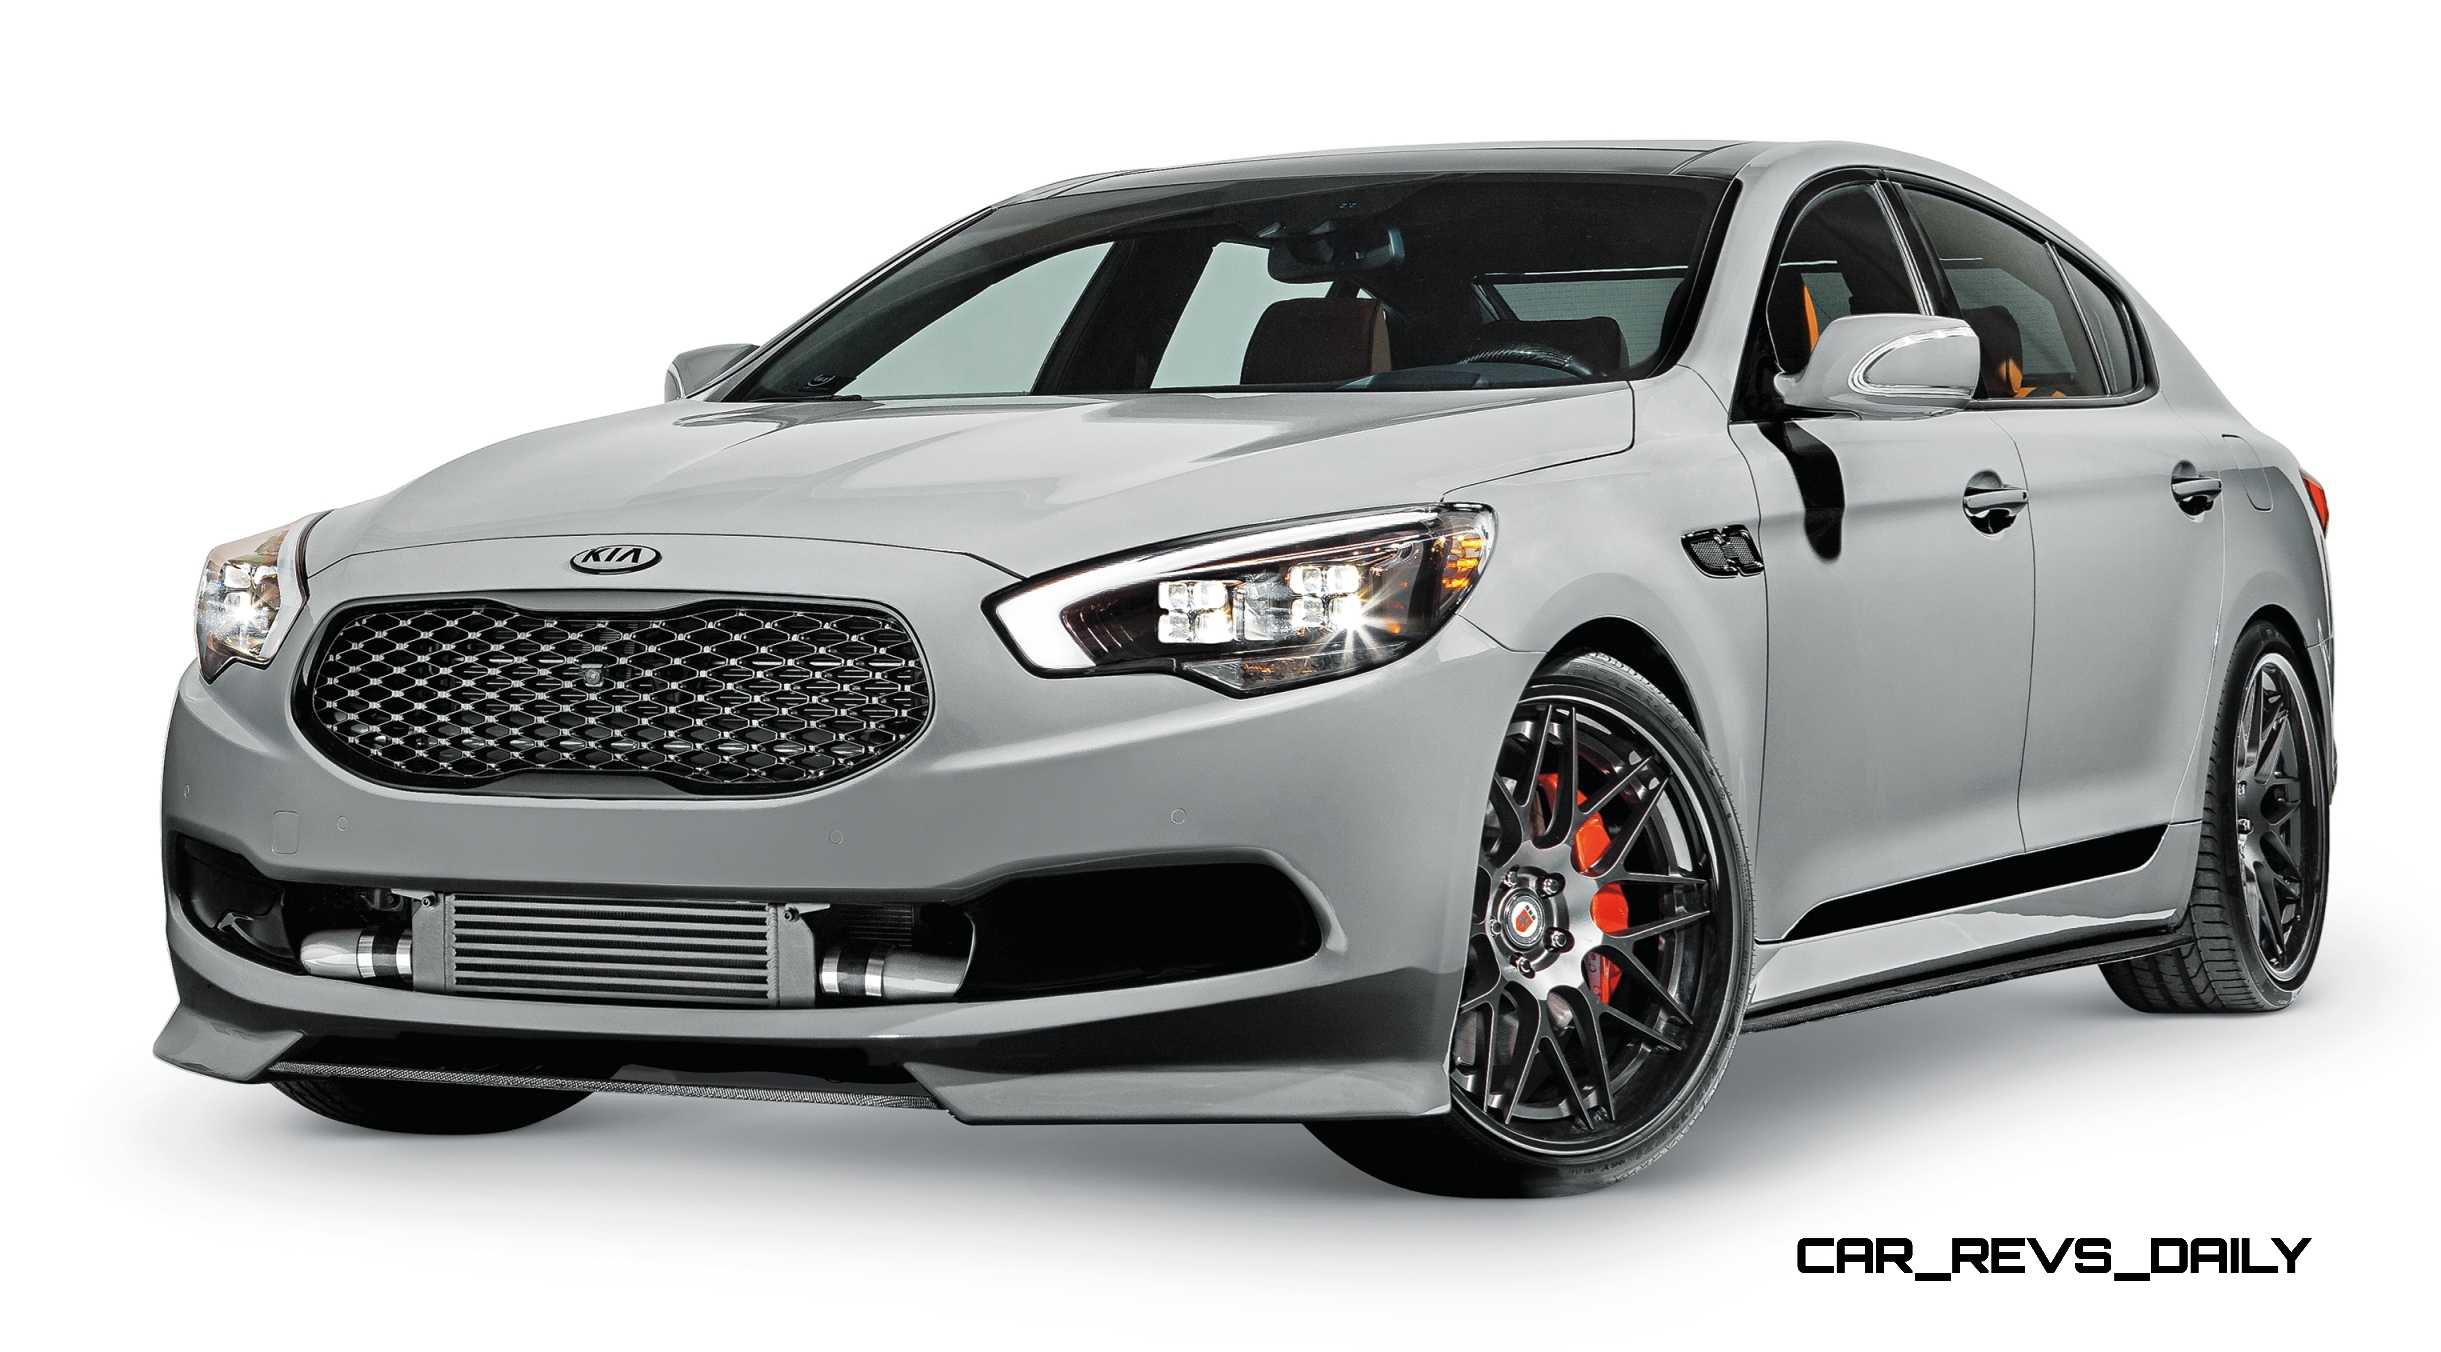 Kia Sema 2014 Preview K900 Soul And Sedona Quot Day At The